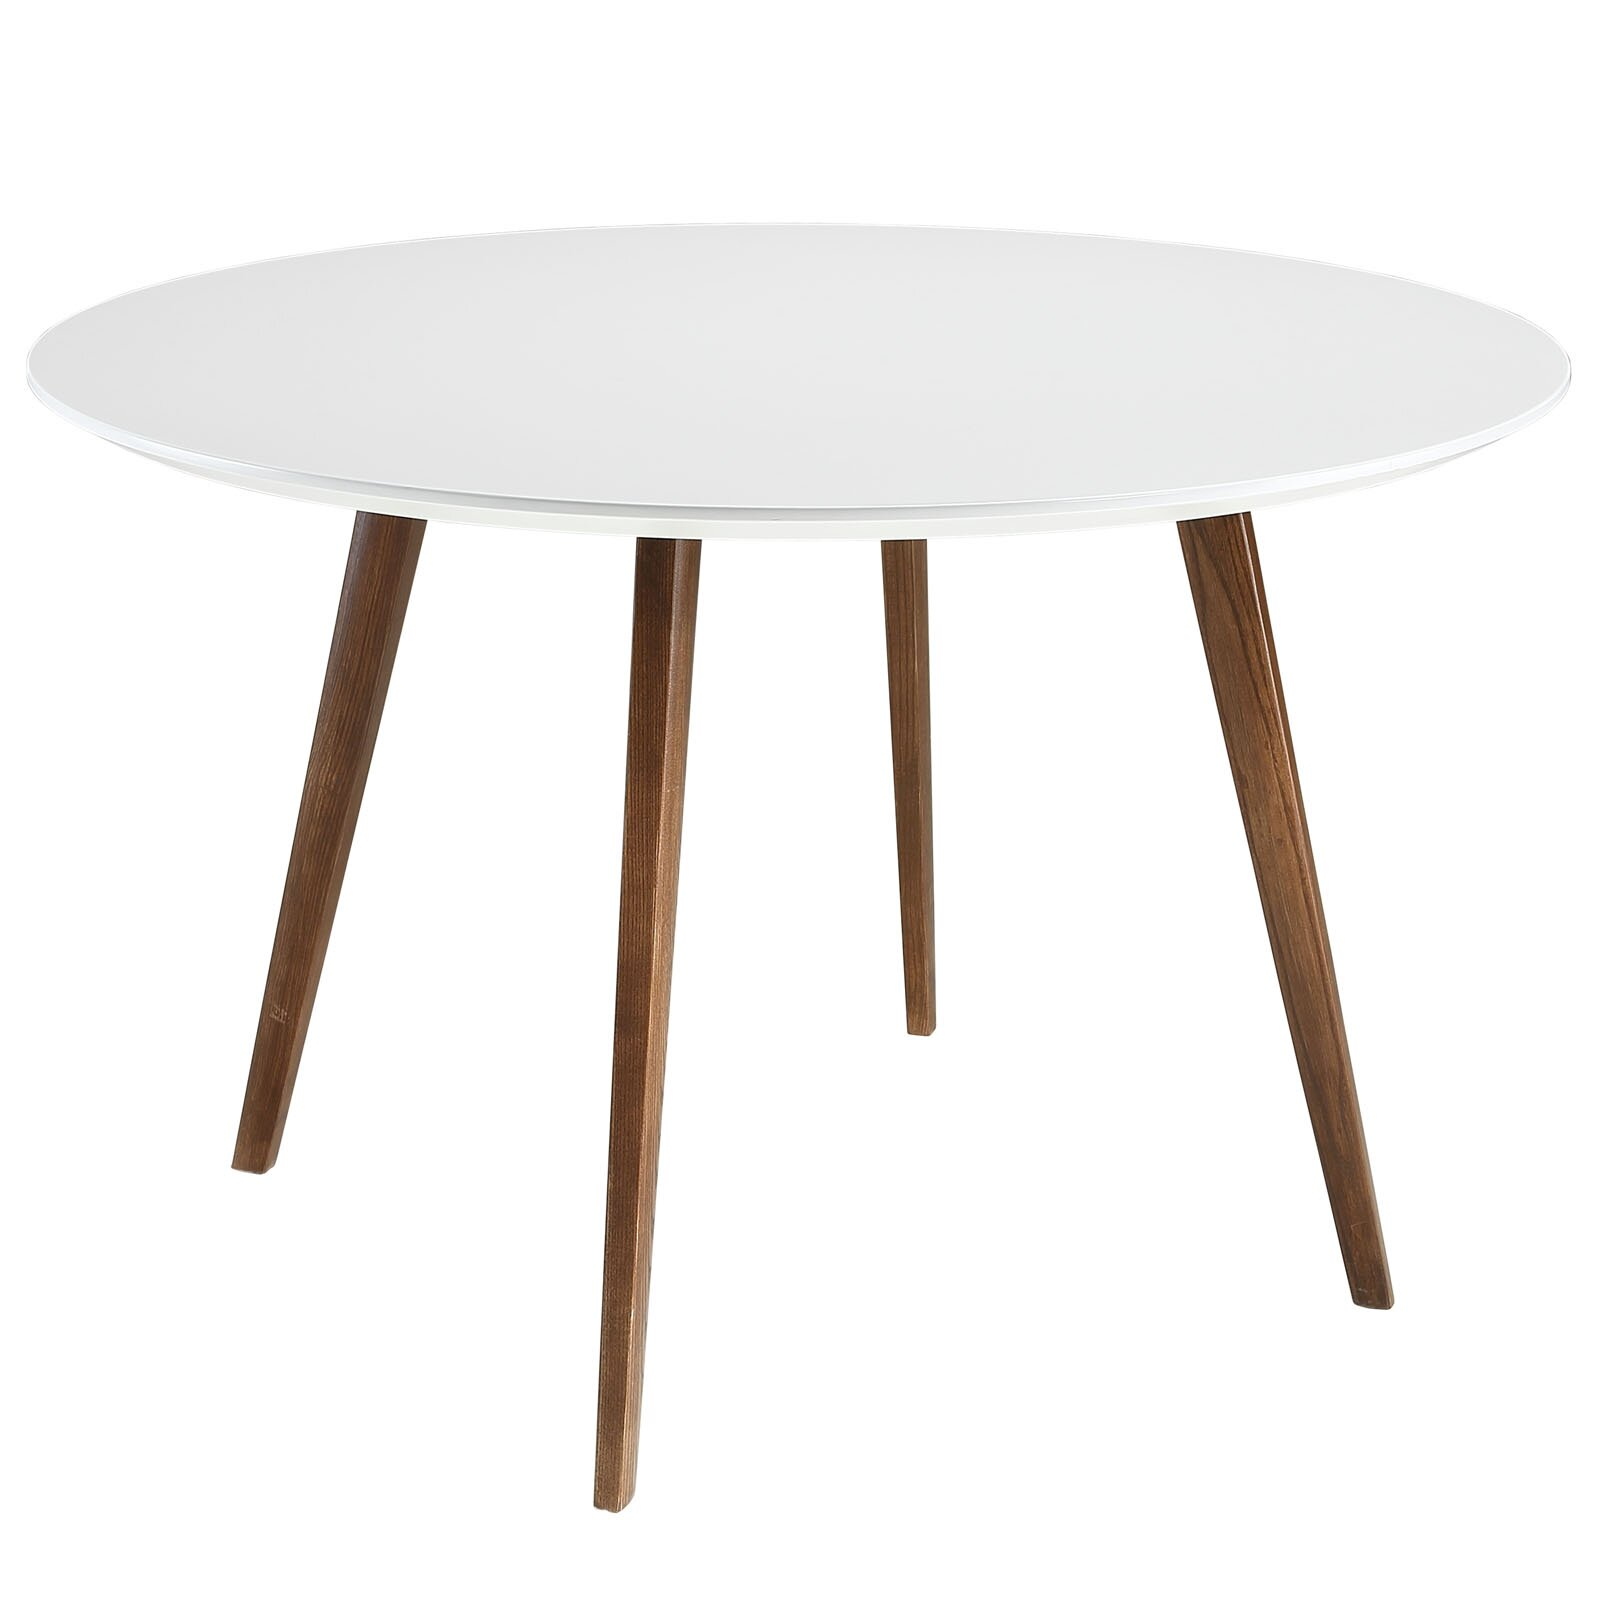 Modway canvas dining table reviews wayfair for Canvas dining